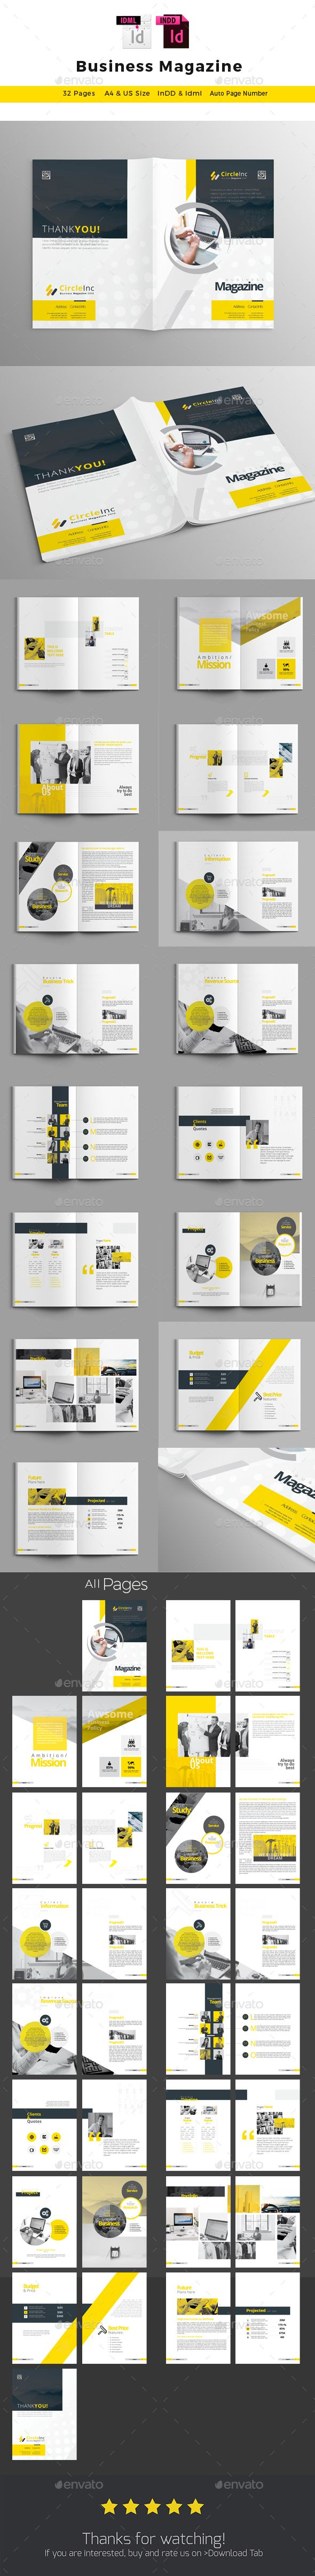 Business Magazine #minimal #manual  • Download here → https://graphicriver.net/item/business-magazine/21083504?ref=pxcr